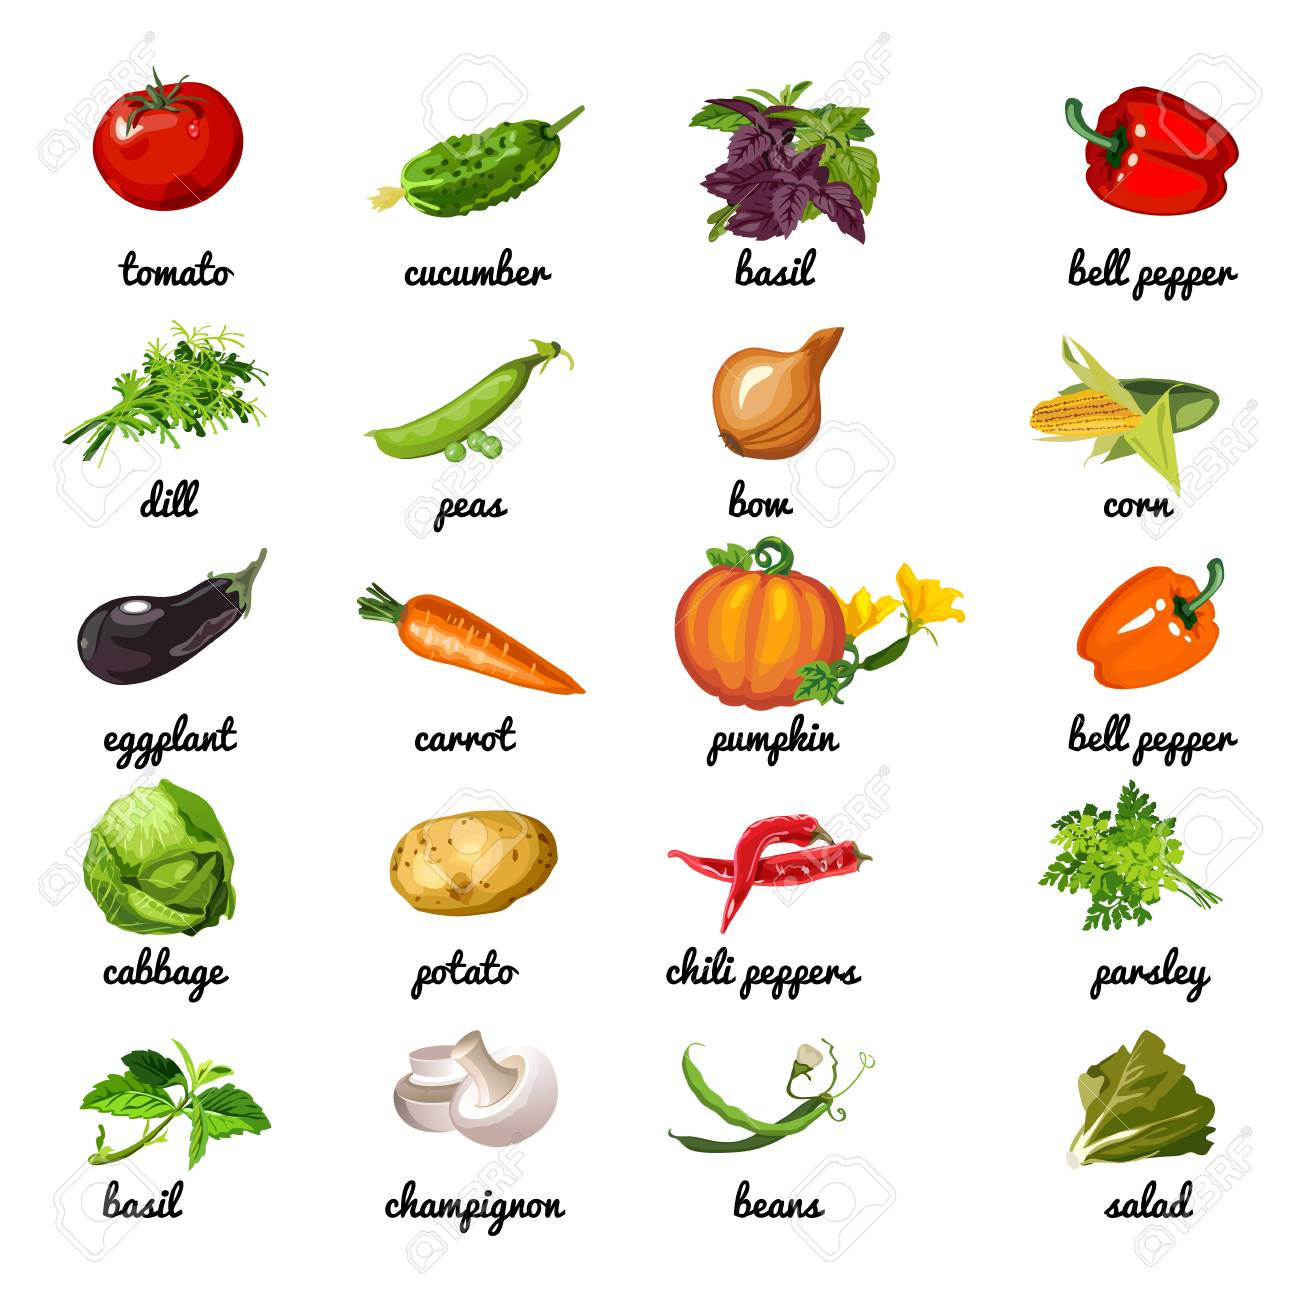 Cute poster on topic of healthy diet  Vegetables and herbs are